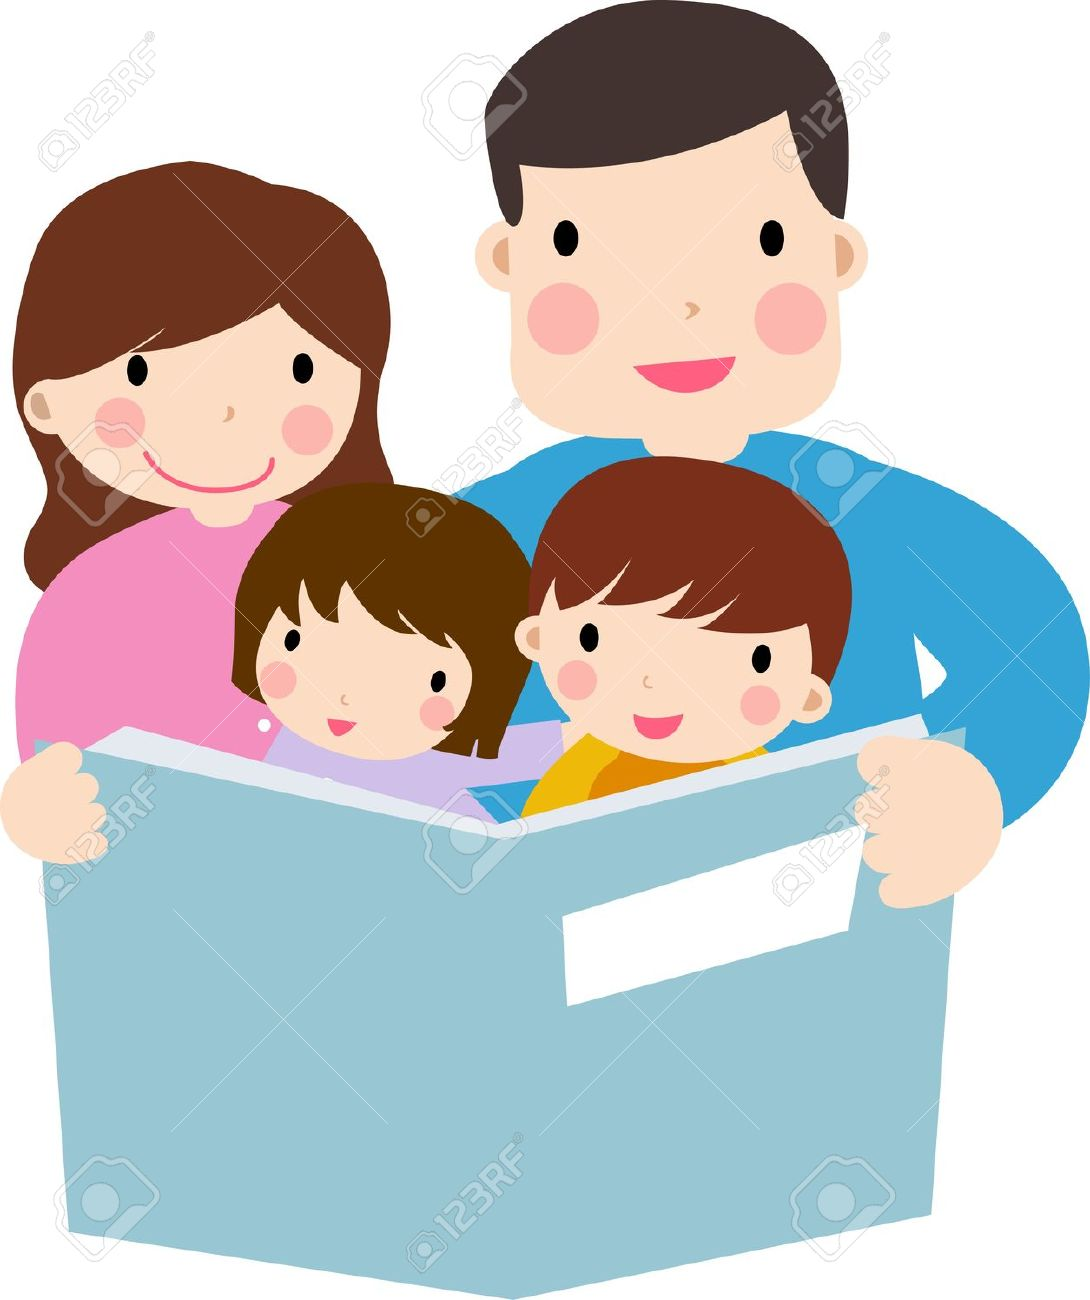 parents and children clip art clipart panda free clipart images rh clipartpanda com clip art of parents and children clipart of grand parents